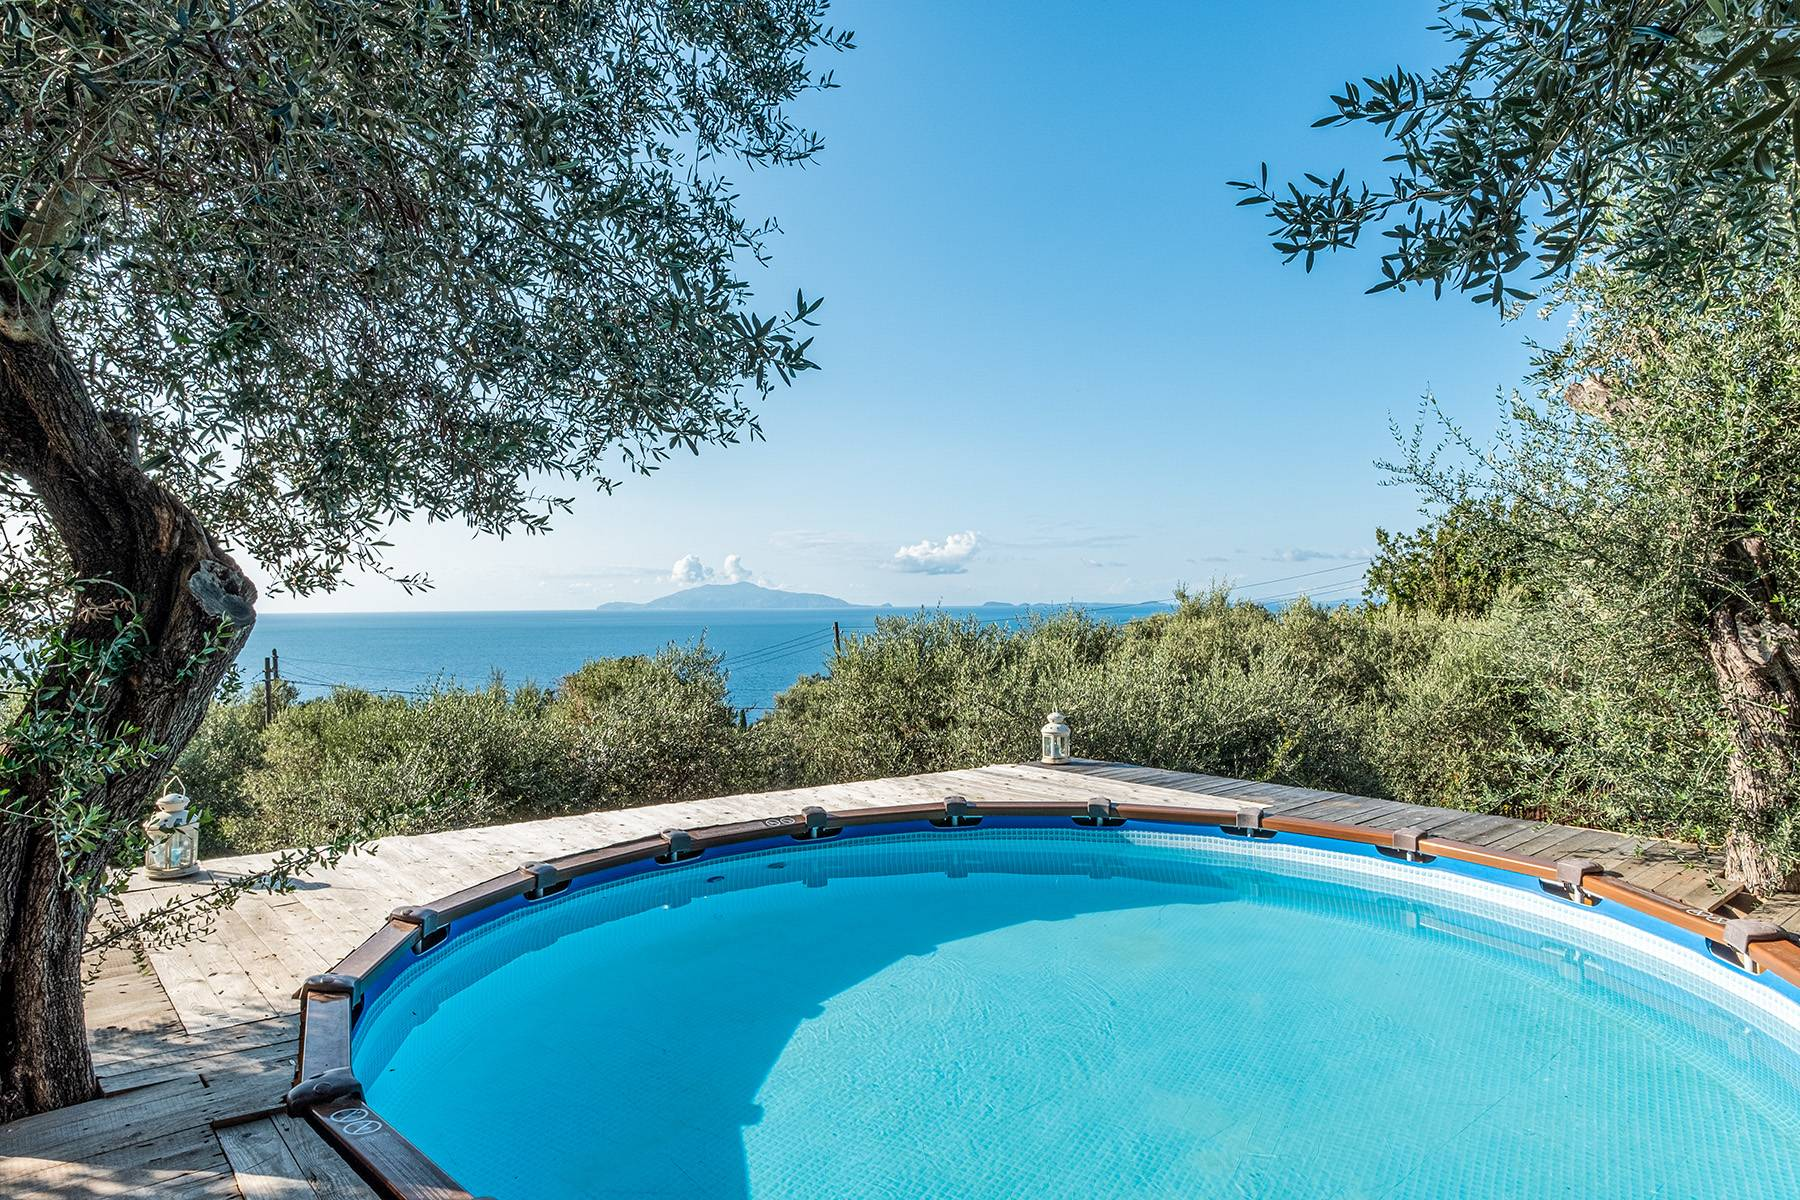 Charming villa with olive grove and swimming pool overlooking the sea - 6